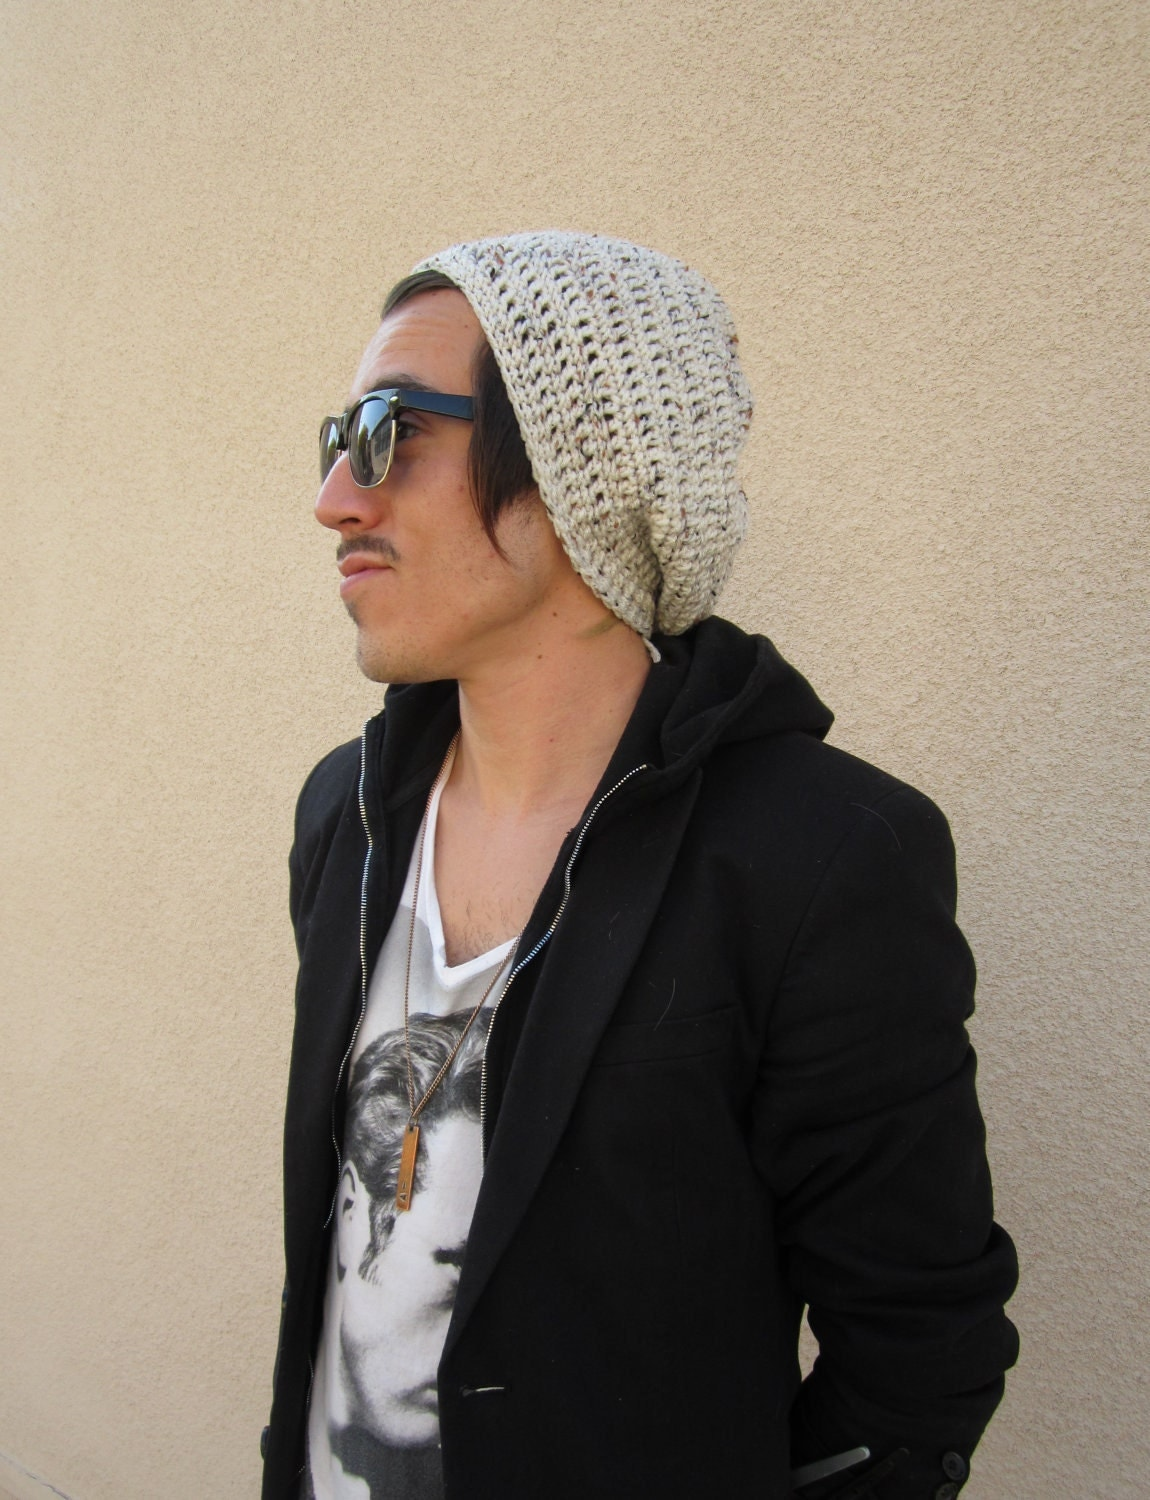 il 170x135.289081855 Etsy Treasury: Hot Guys in Crochet Hats